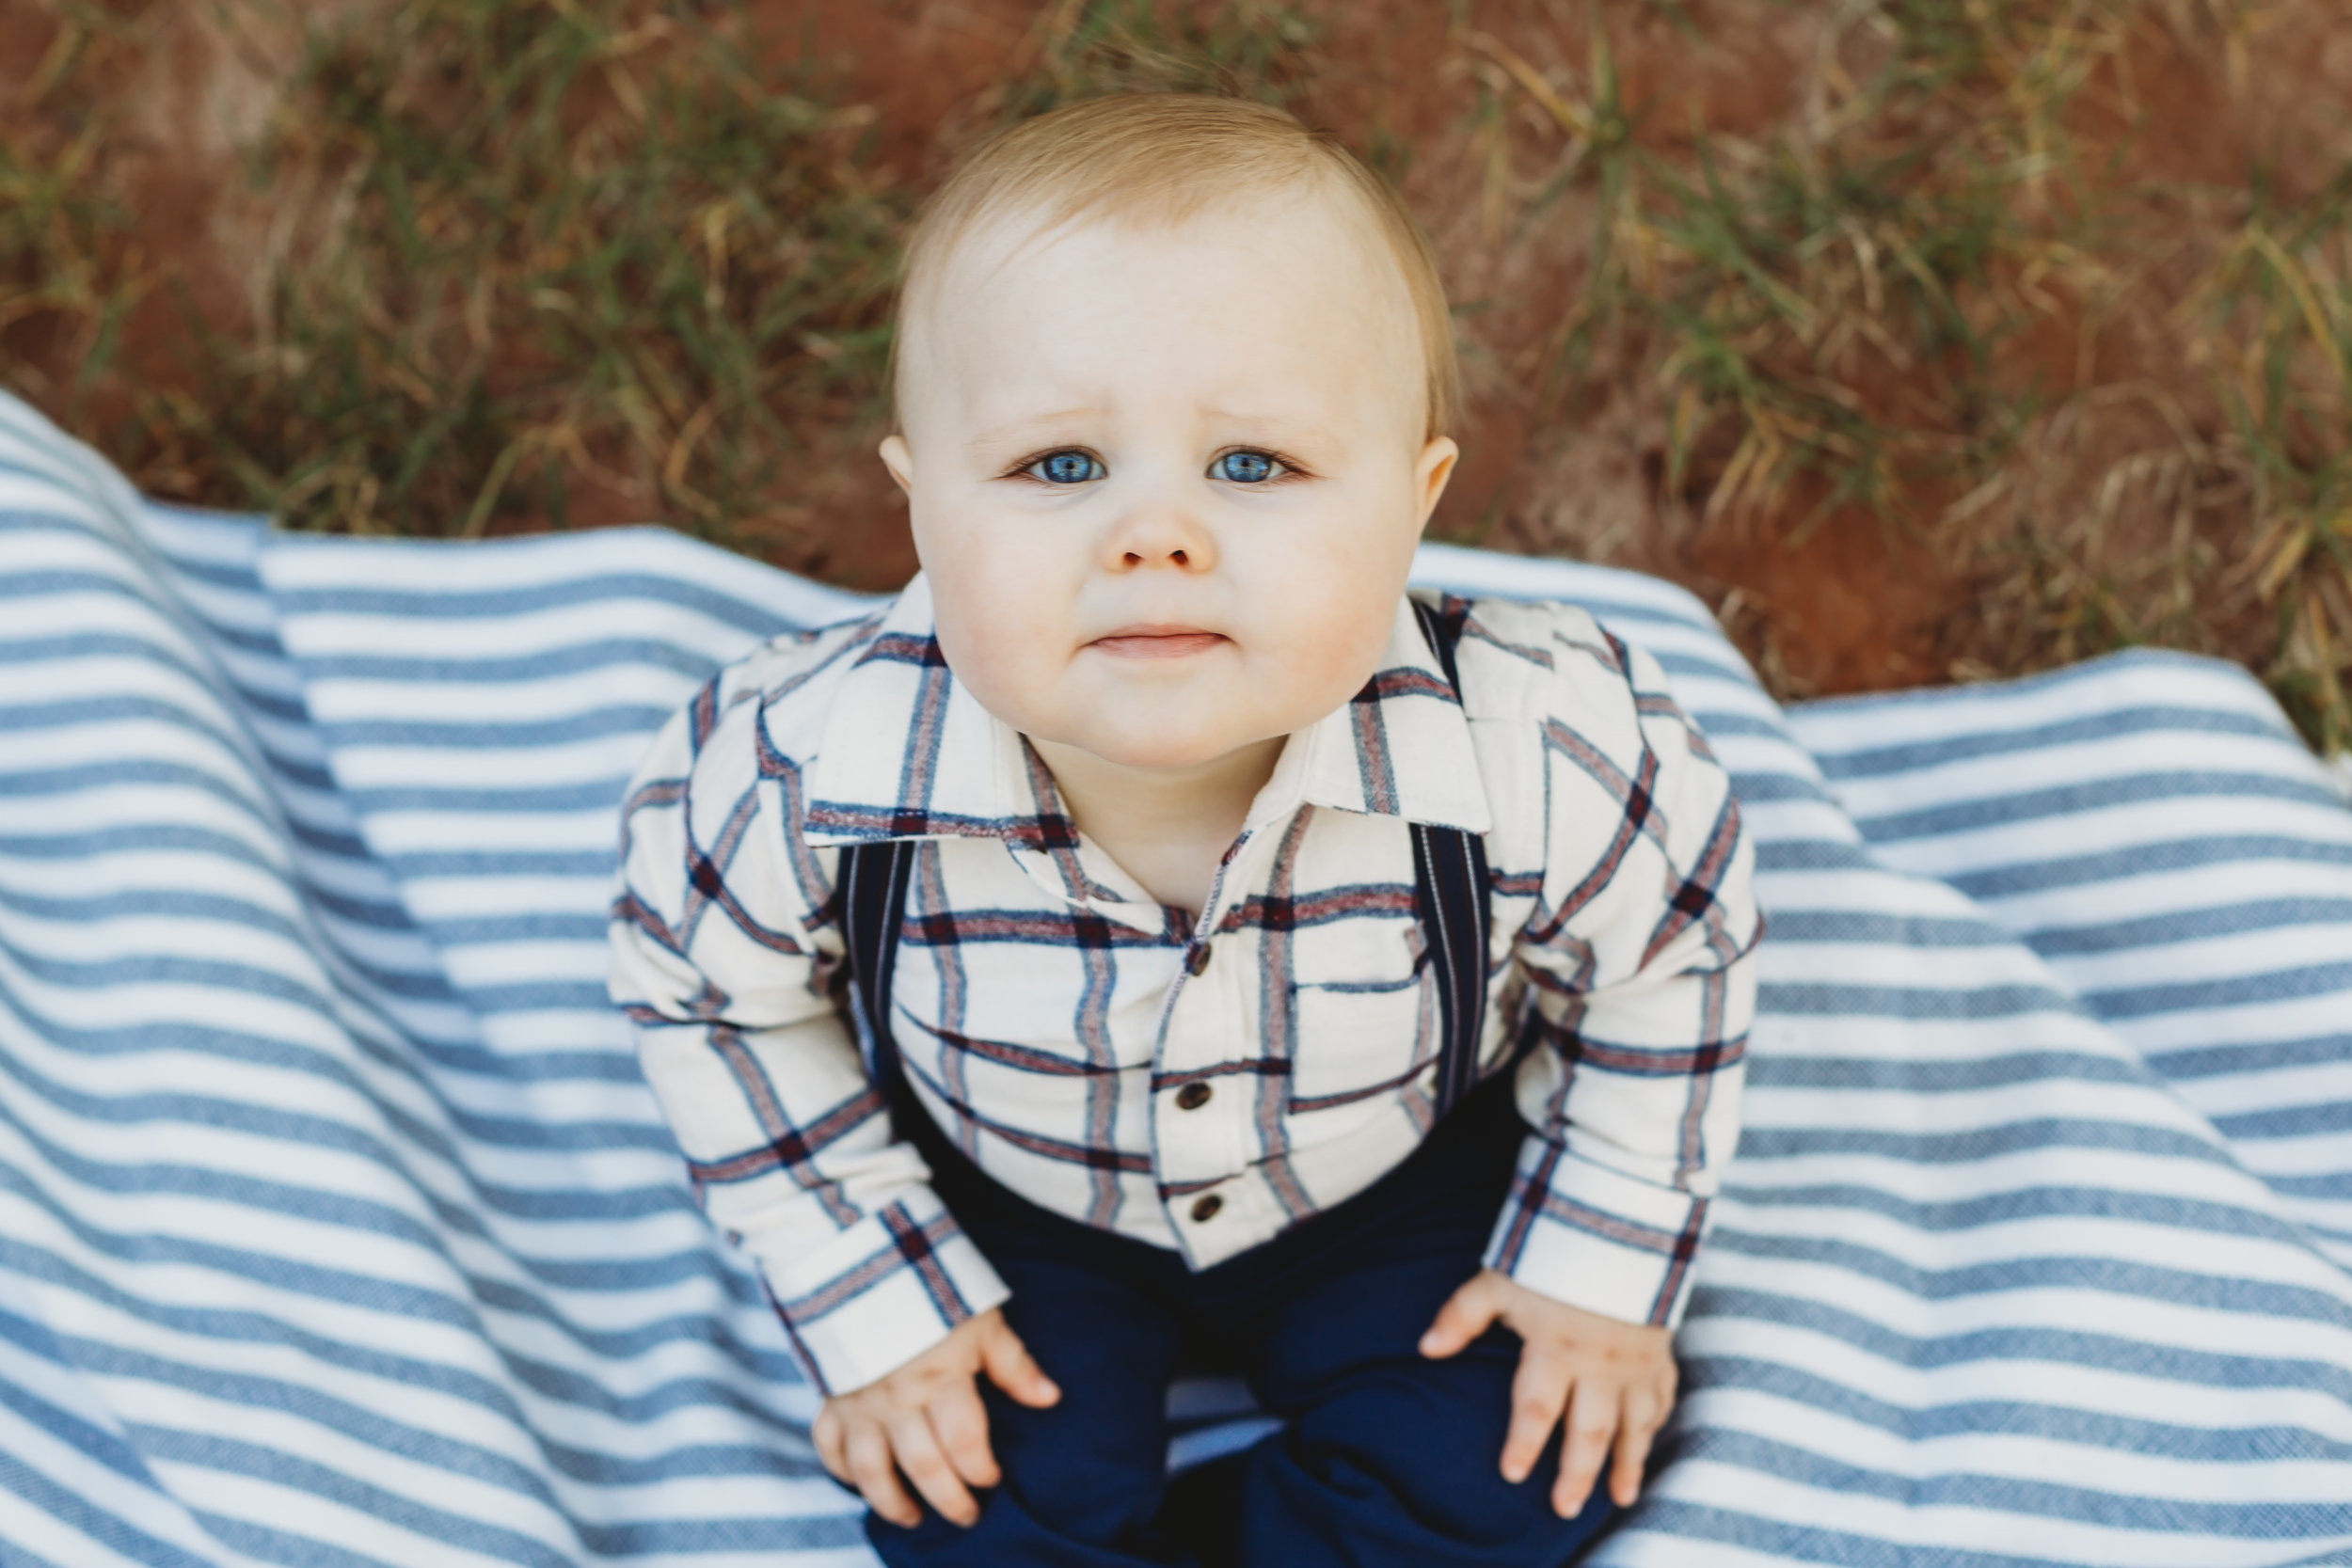 Baby brother sitting on picnic blanket looking up at the camera in stripes and suspenders #tealawardphotography #texasfamilyphotographer #amarillophotographer #amarillofamilyphotographer #lifestylephotography #emotionalphotography #familyphotosoot #family #lovingsiblings #purejoy #familyphotos #familyphotographer #greatoutdoors